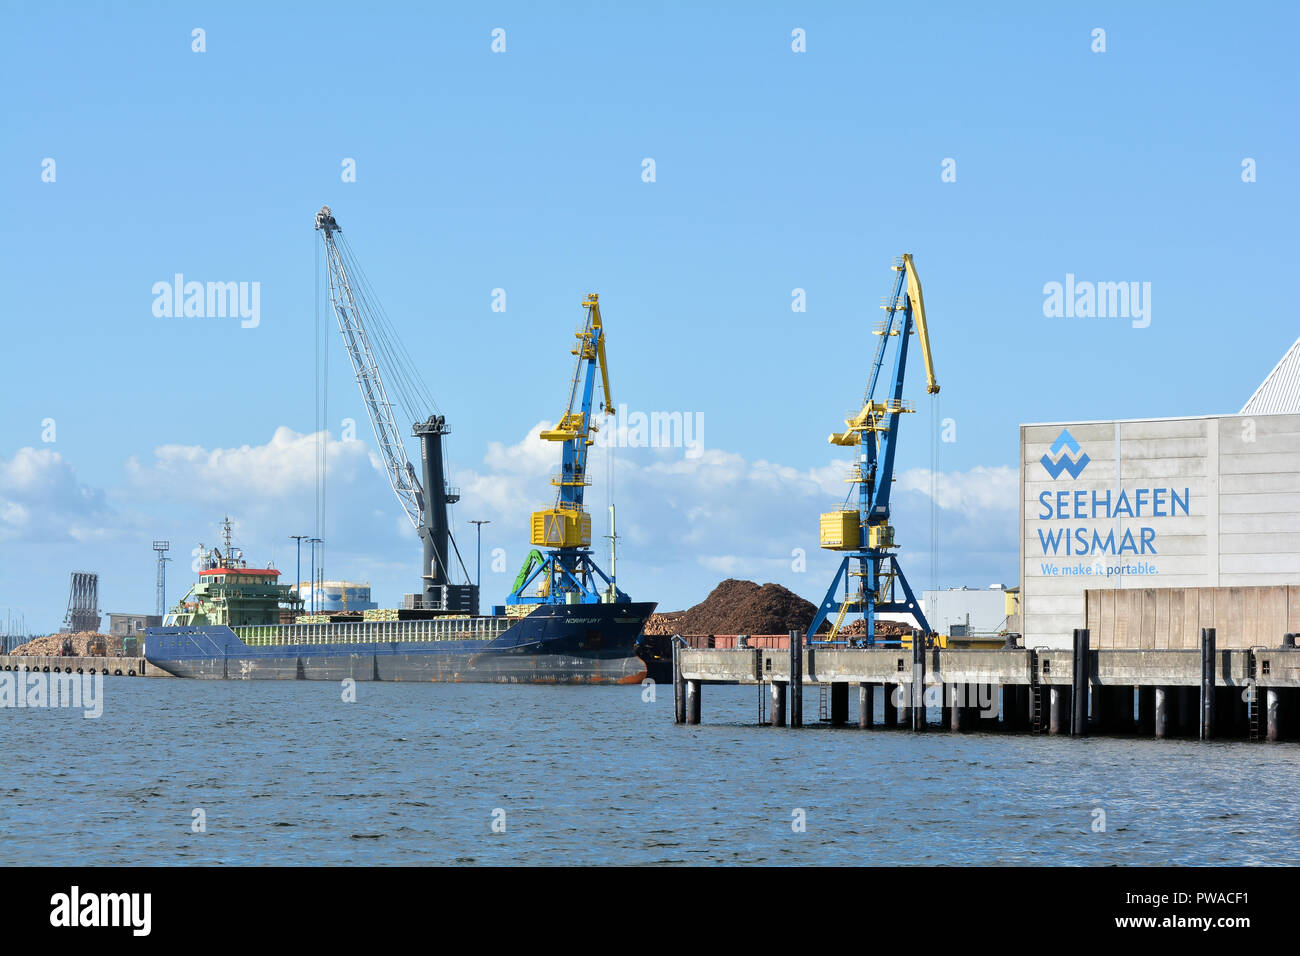 Cranes in the harbor of Wismar on the Baltic Sea - Stock Image